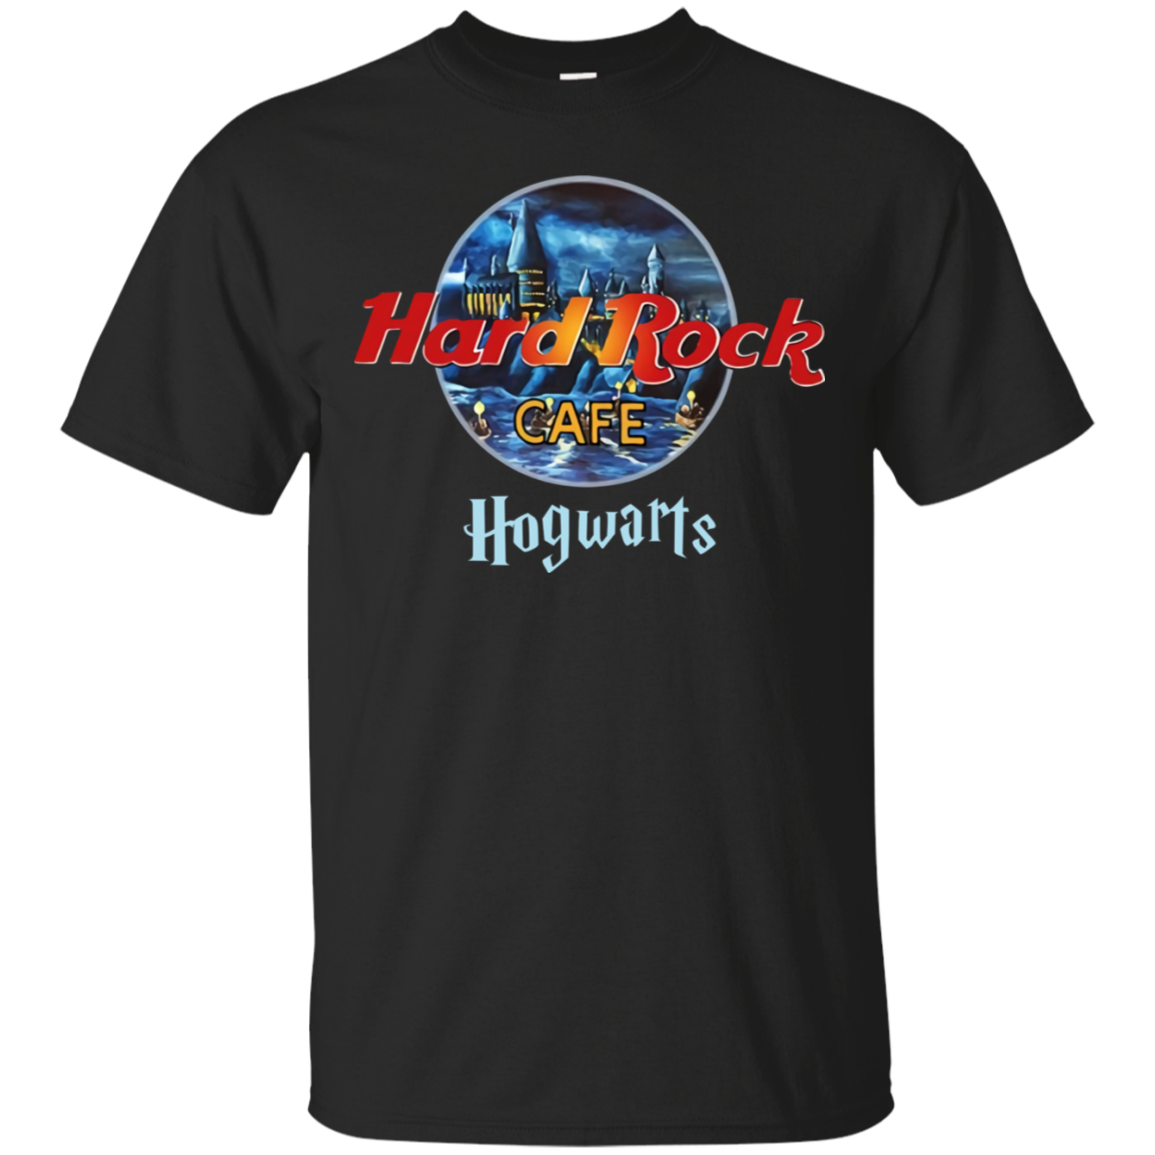 hard_rock_aw Hard Rock Cafe Hogwarts Harry P0tter T Shirt Black Cotton Men M-3XL